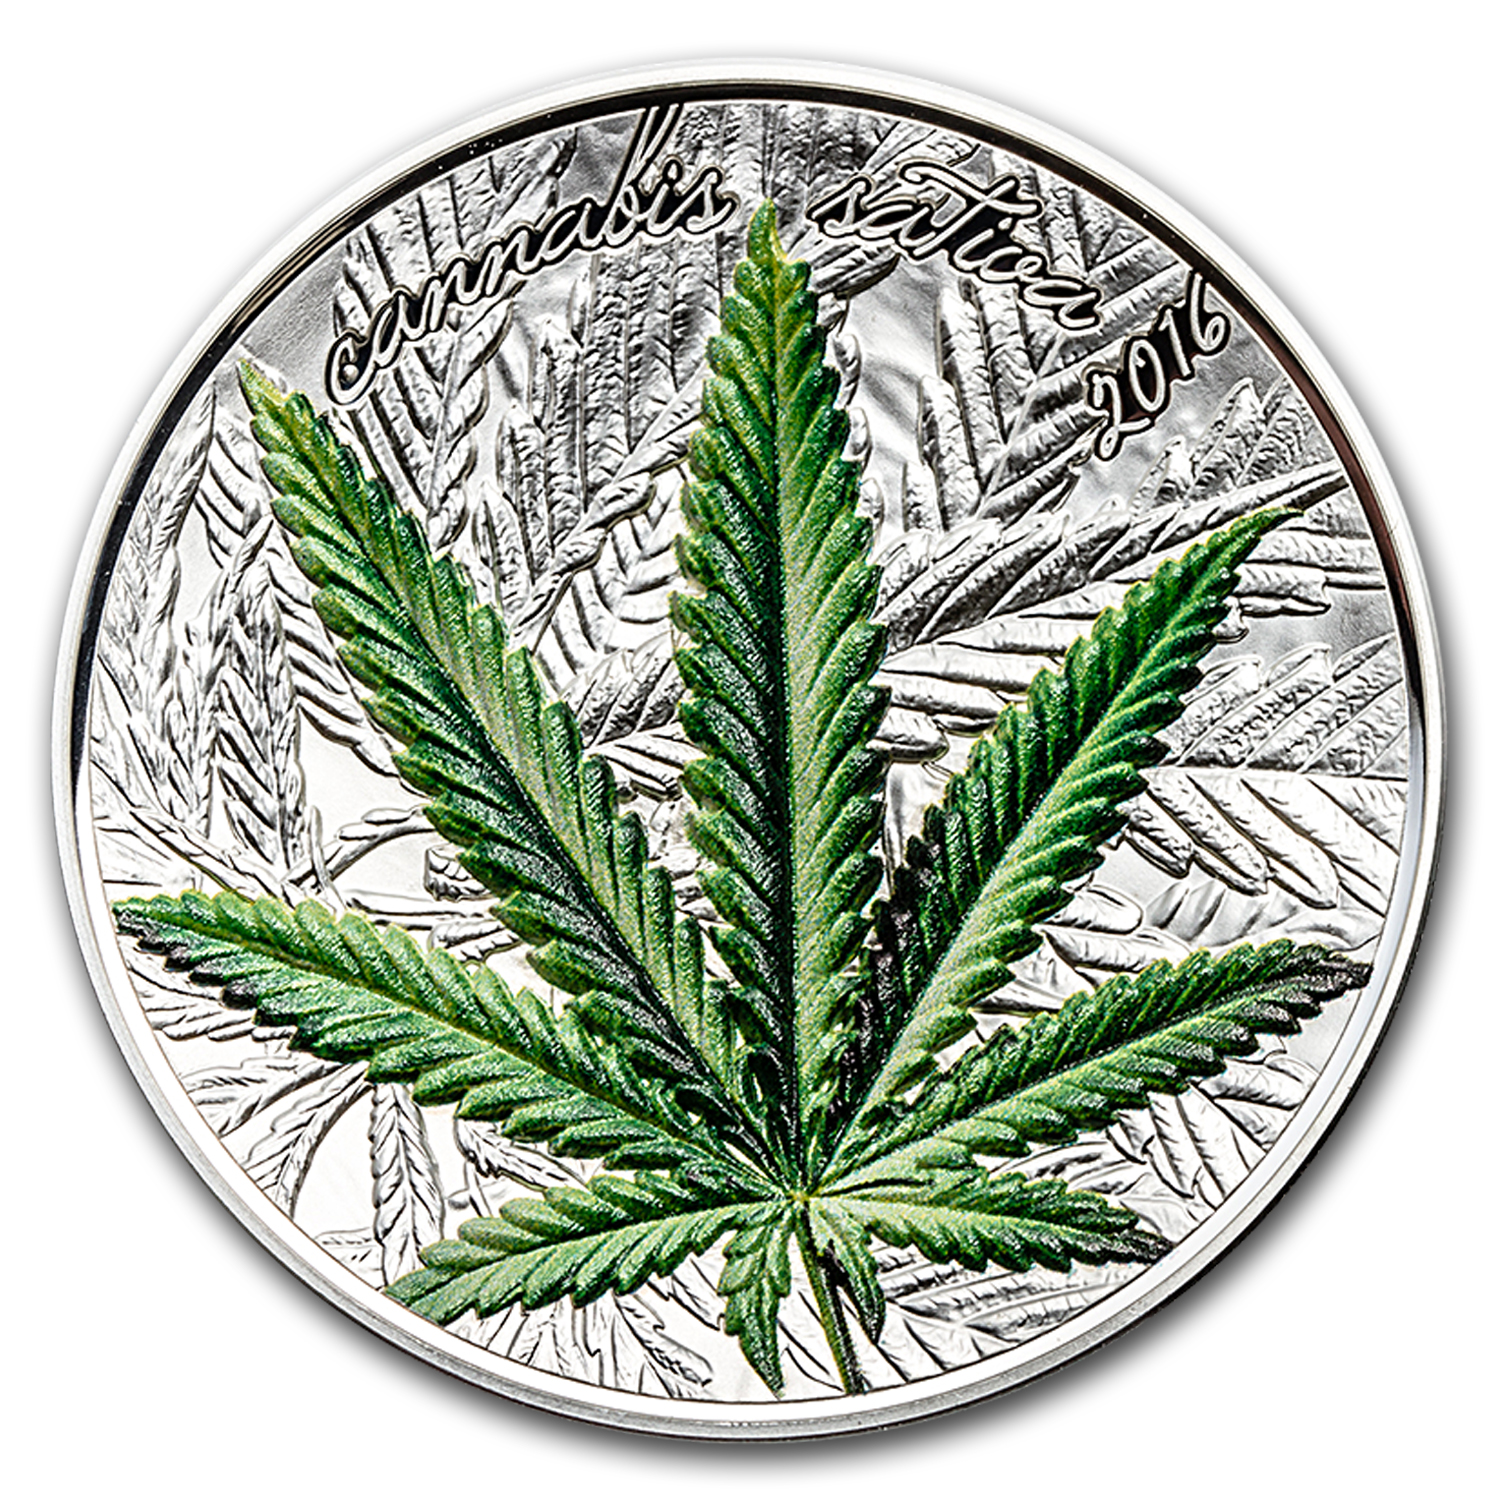 2016 Benin 1 oz Silver 1000 Francs CFA Cannabis Leaf